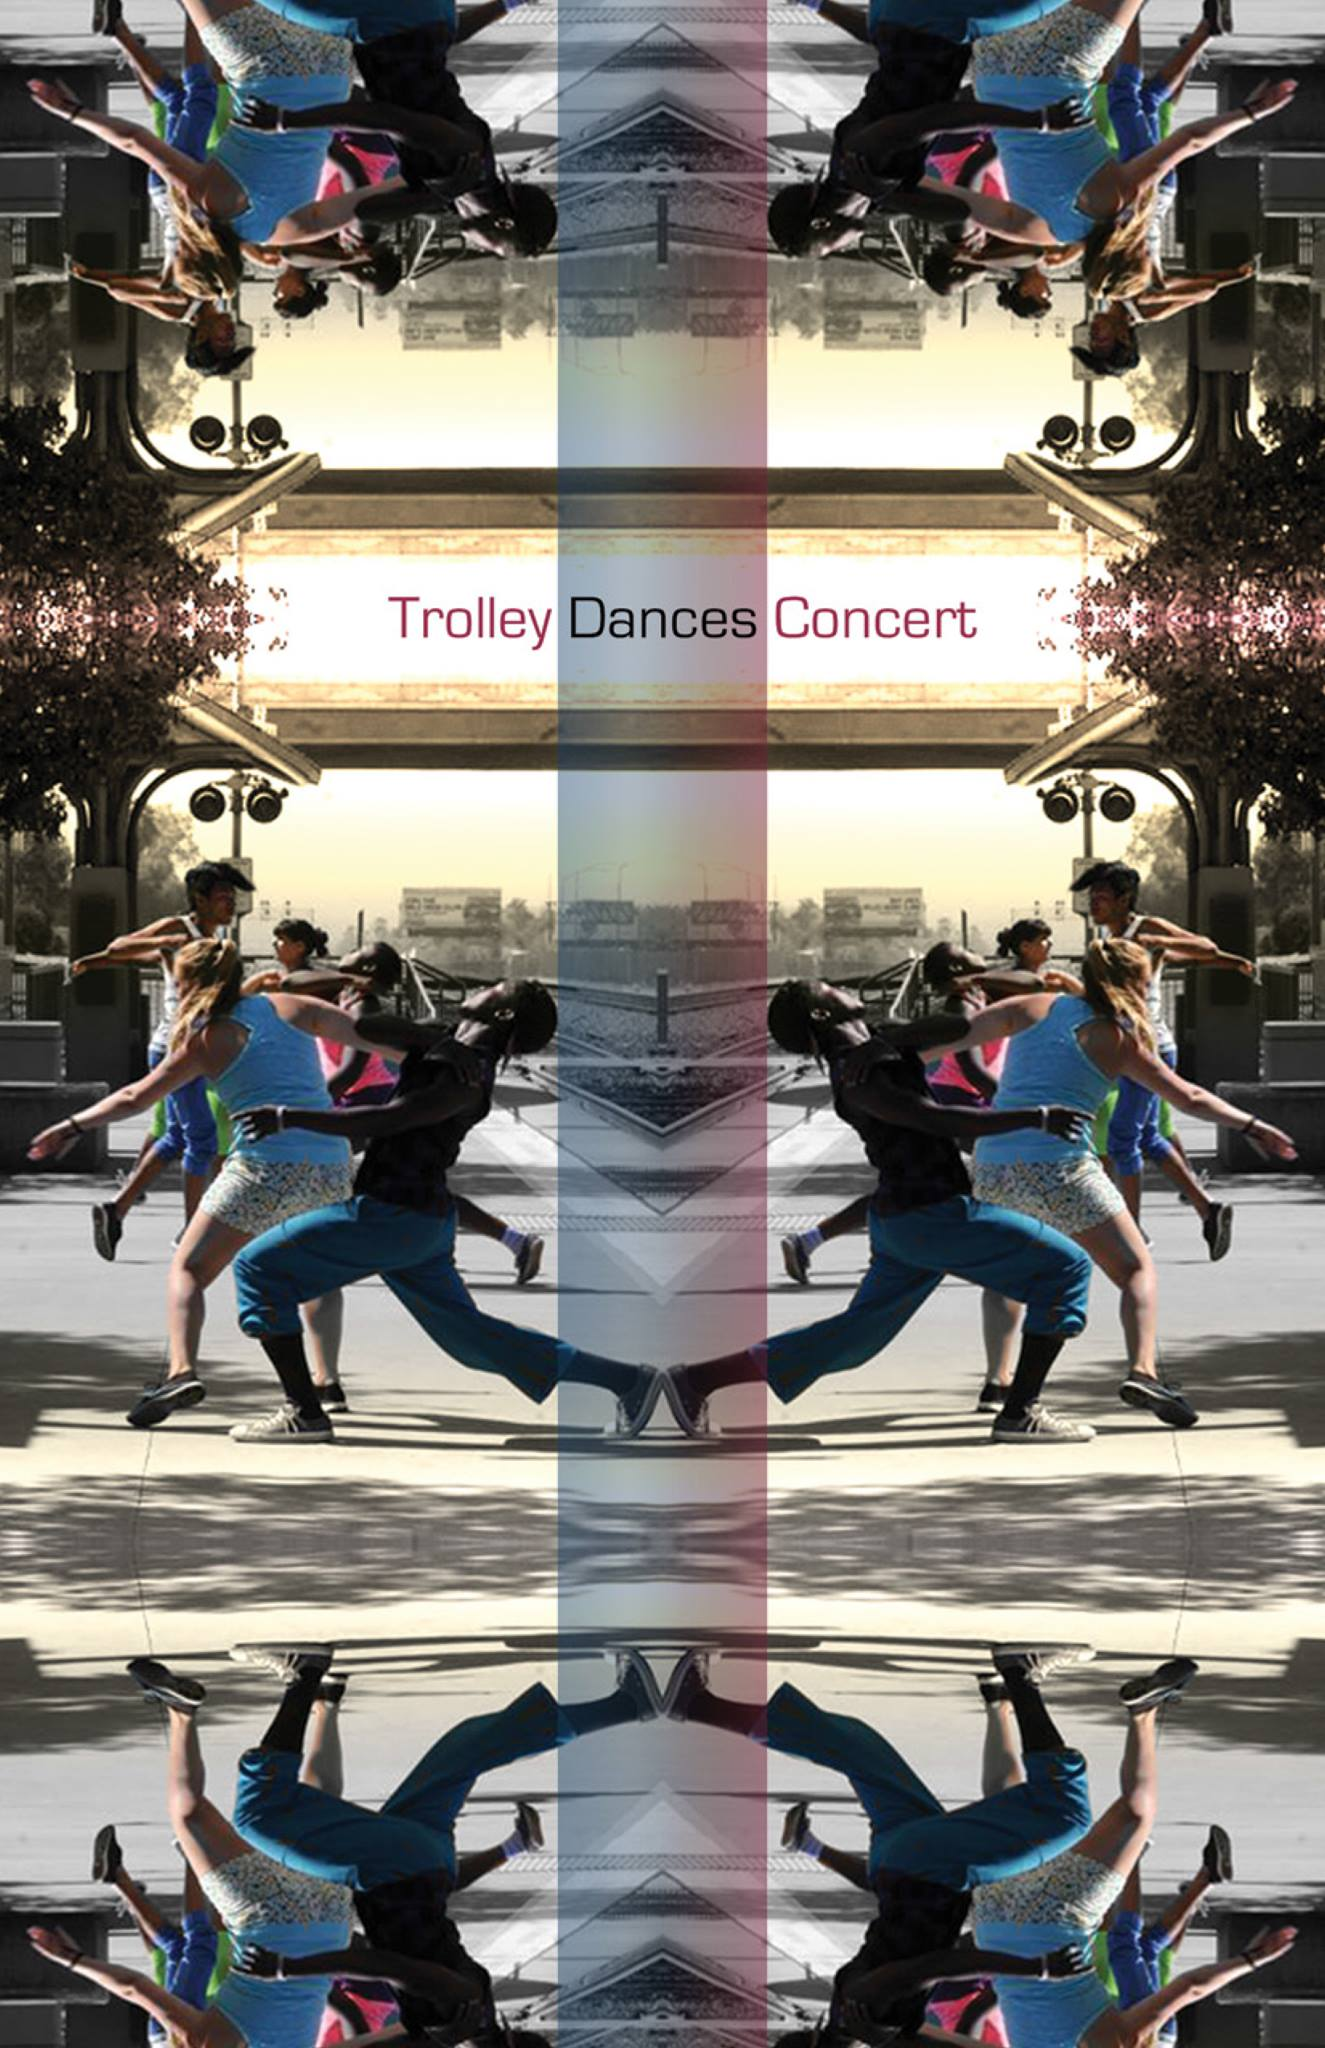 Trolley Dances Concert